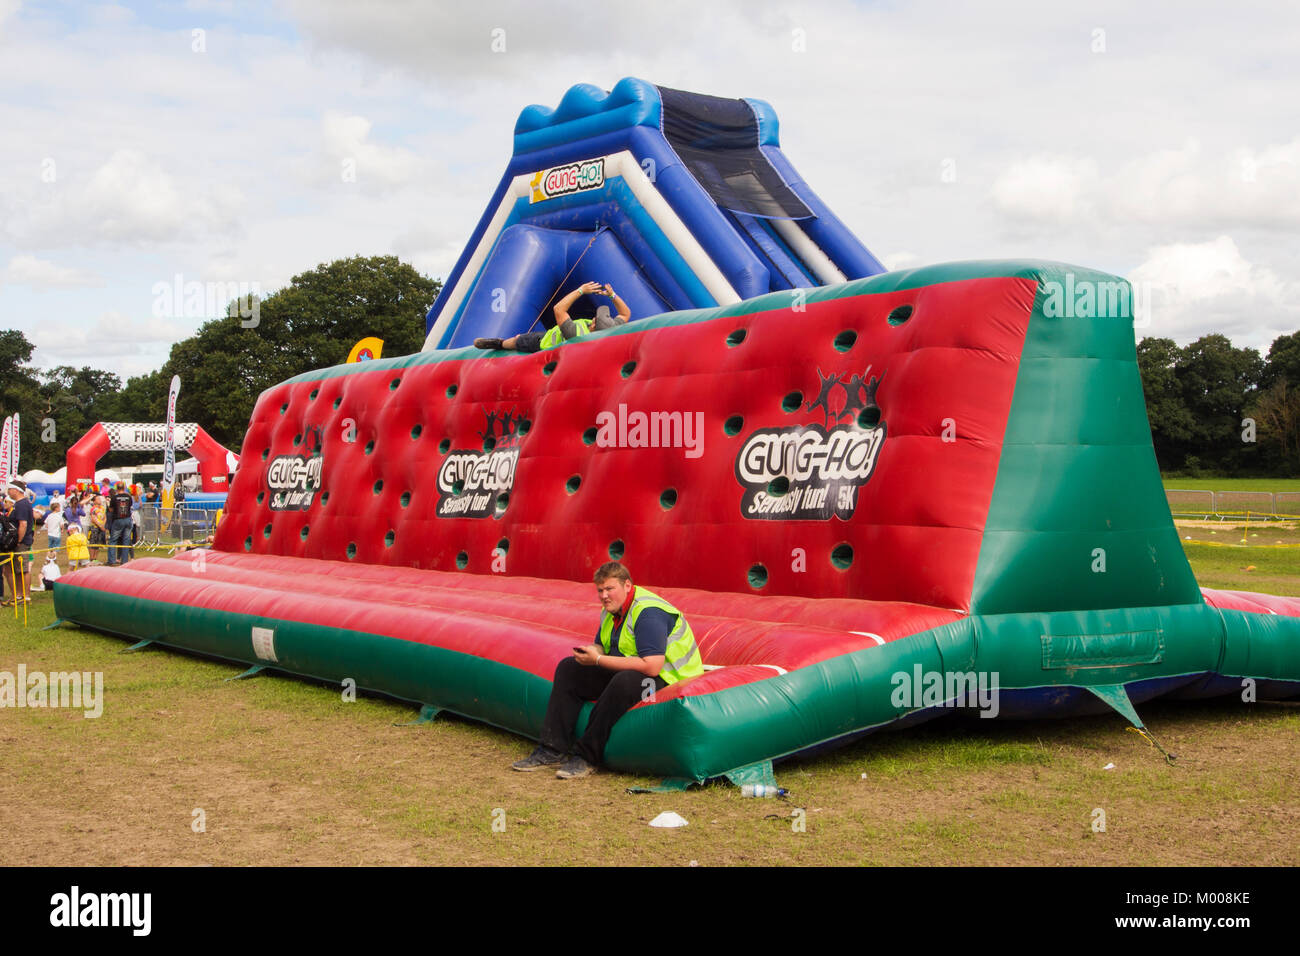 An assualt course at Carfest North in the grounds of Bolesworth Castle, Cheshire, UK. Stock Photo